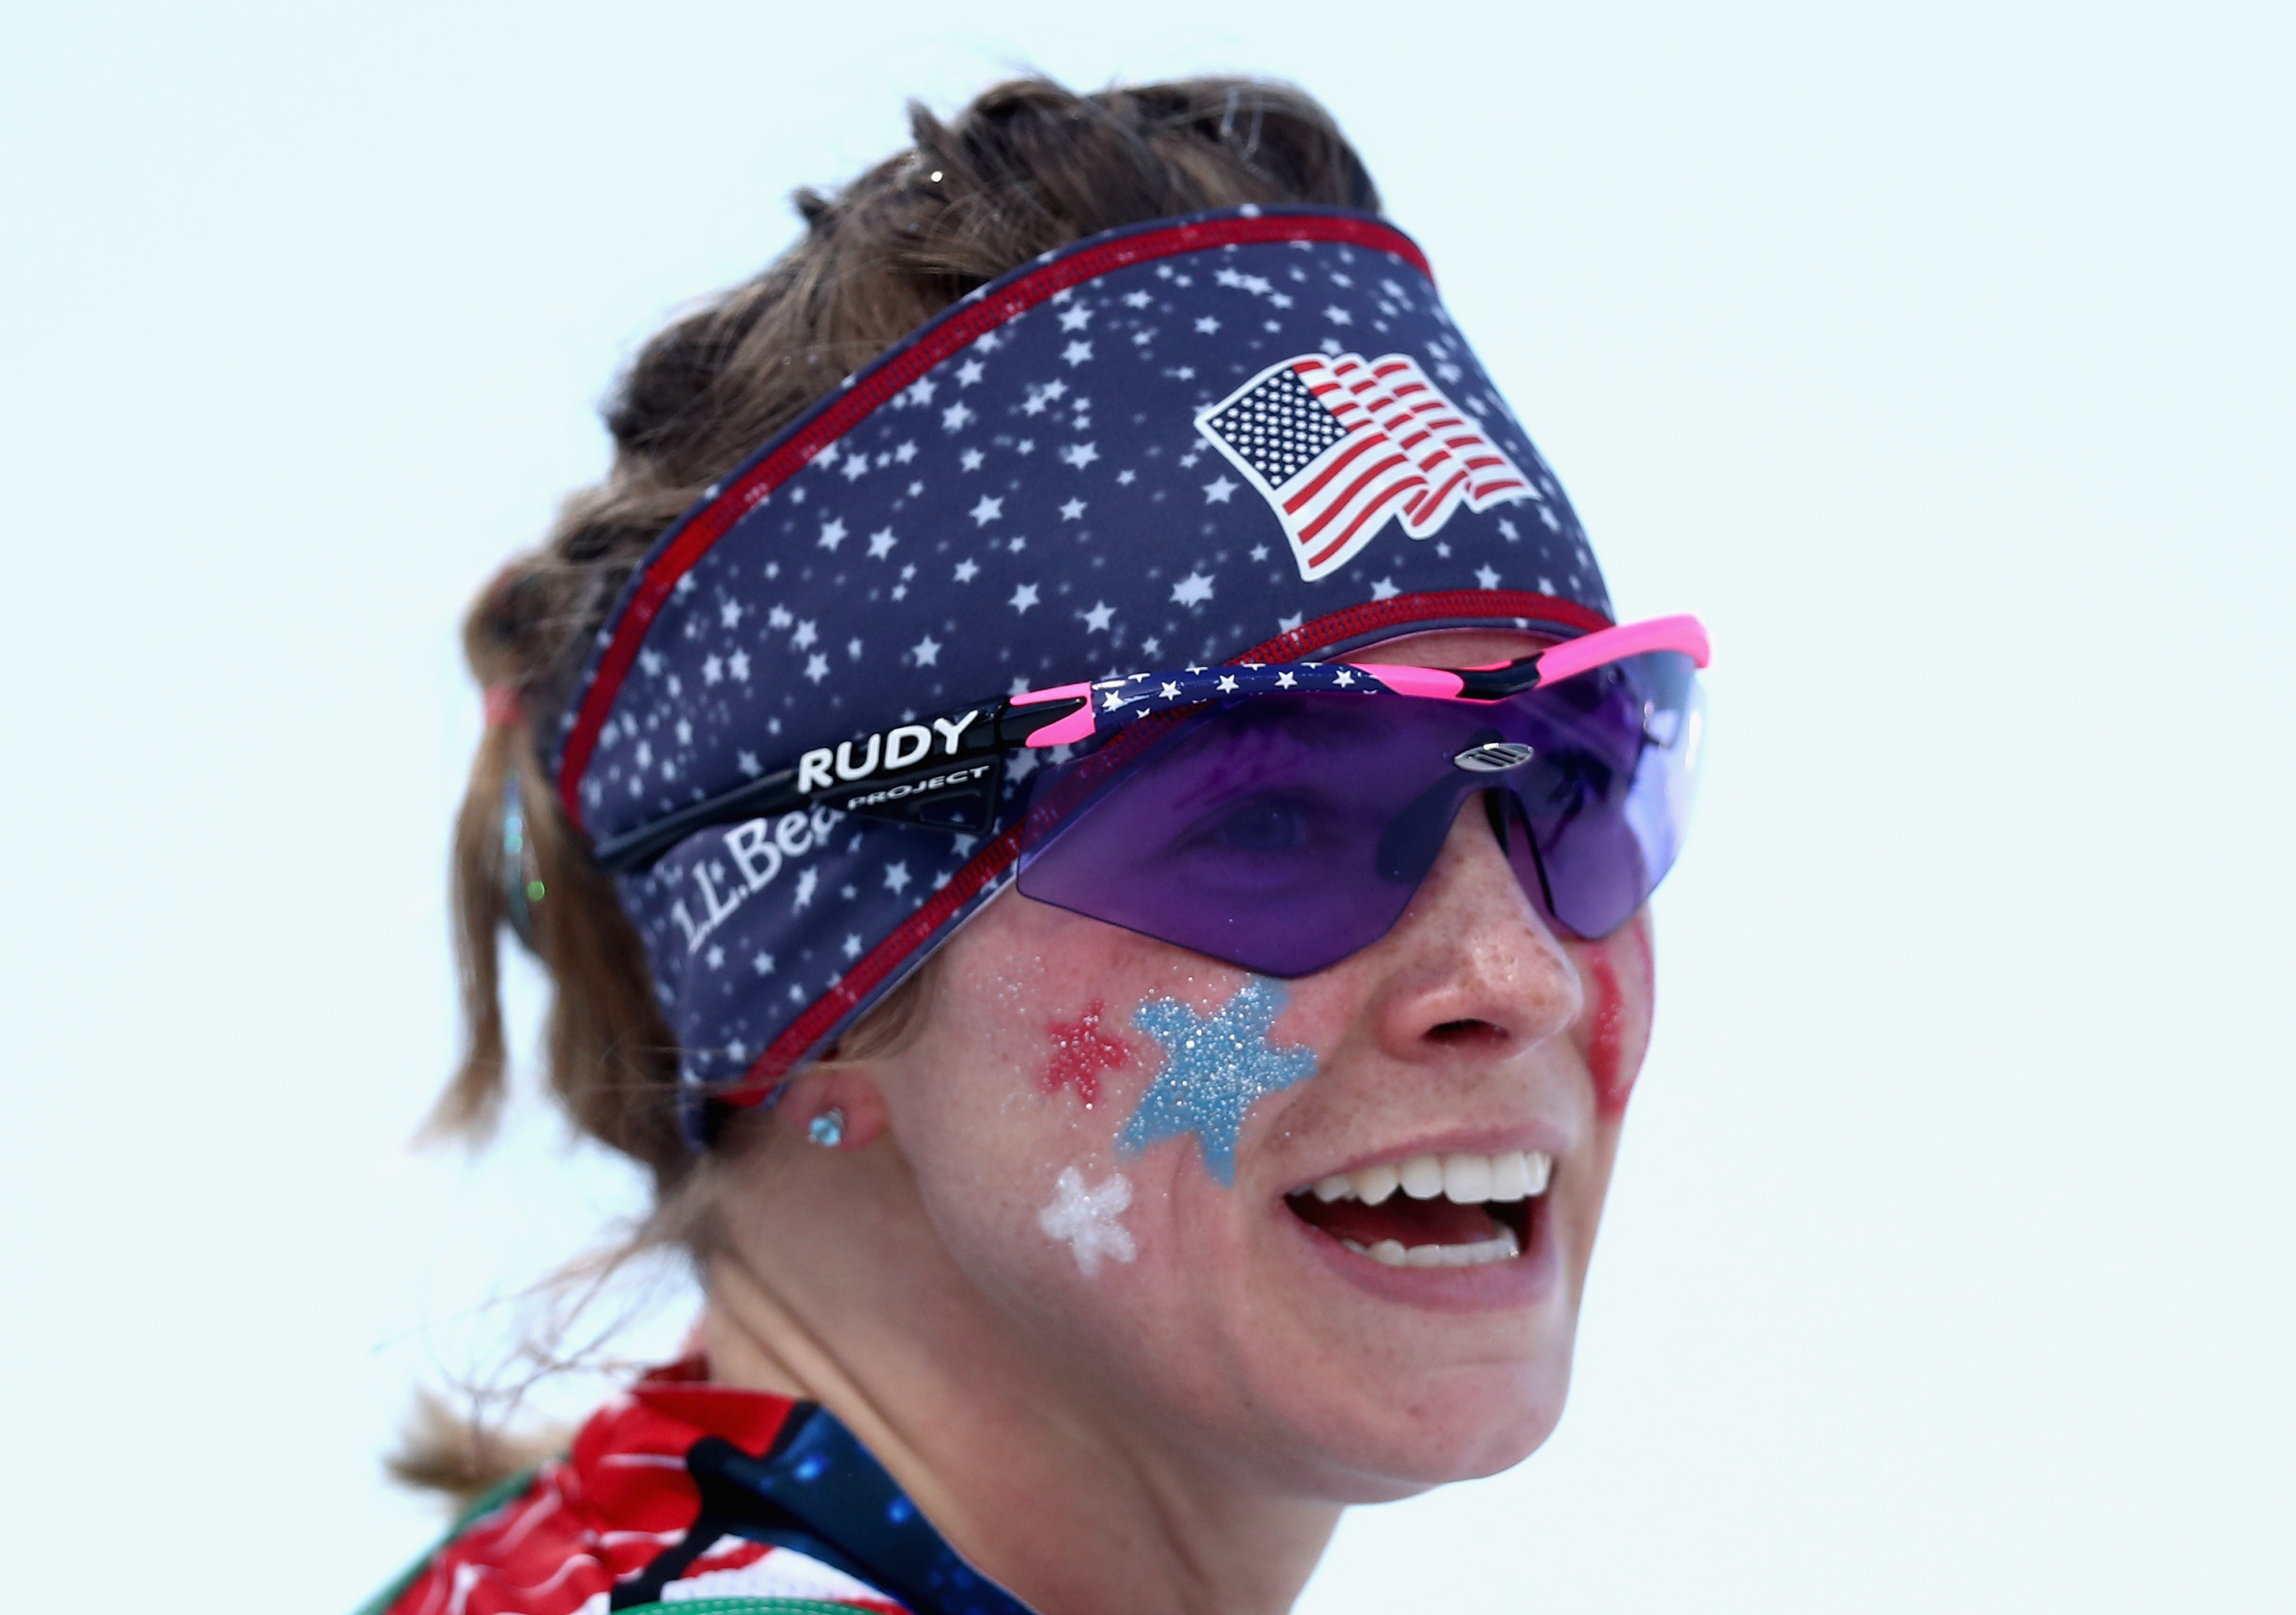 Jessie Diggins will carry the United States flag at Olympics closing ceremony